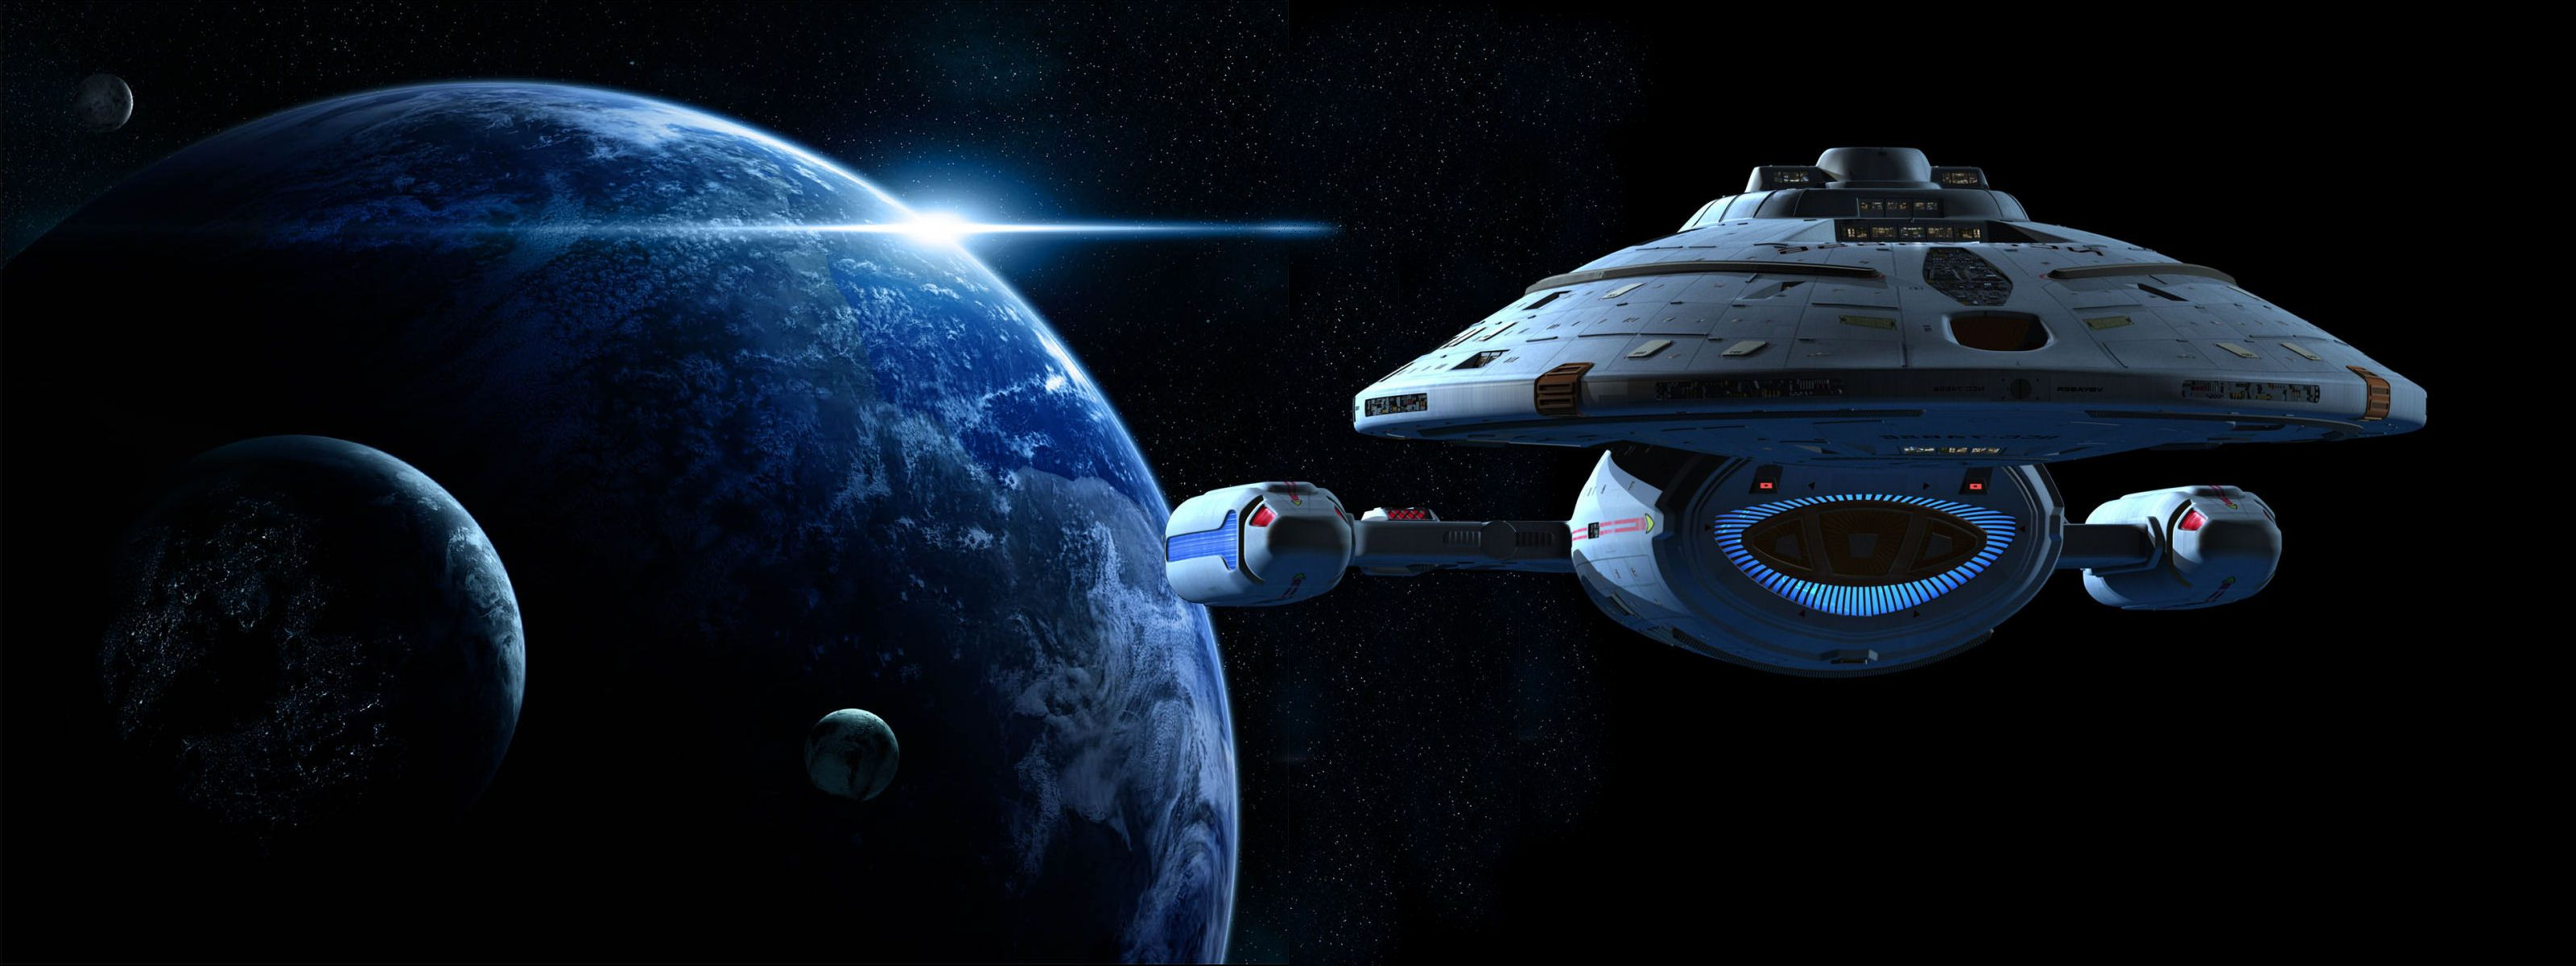 Cool Wallpaper Home Screen Star Trek - 20cfe5dd21668fb5265e5c0336ec11e9  Snapshot_72424.jpg